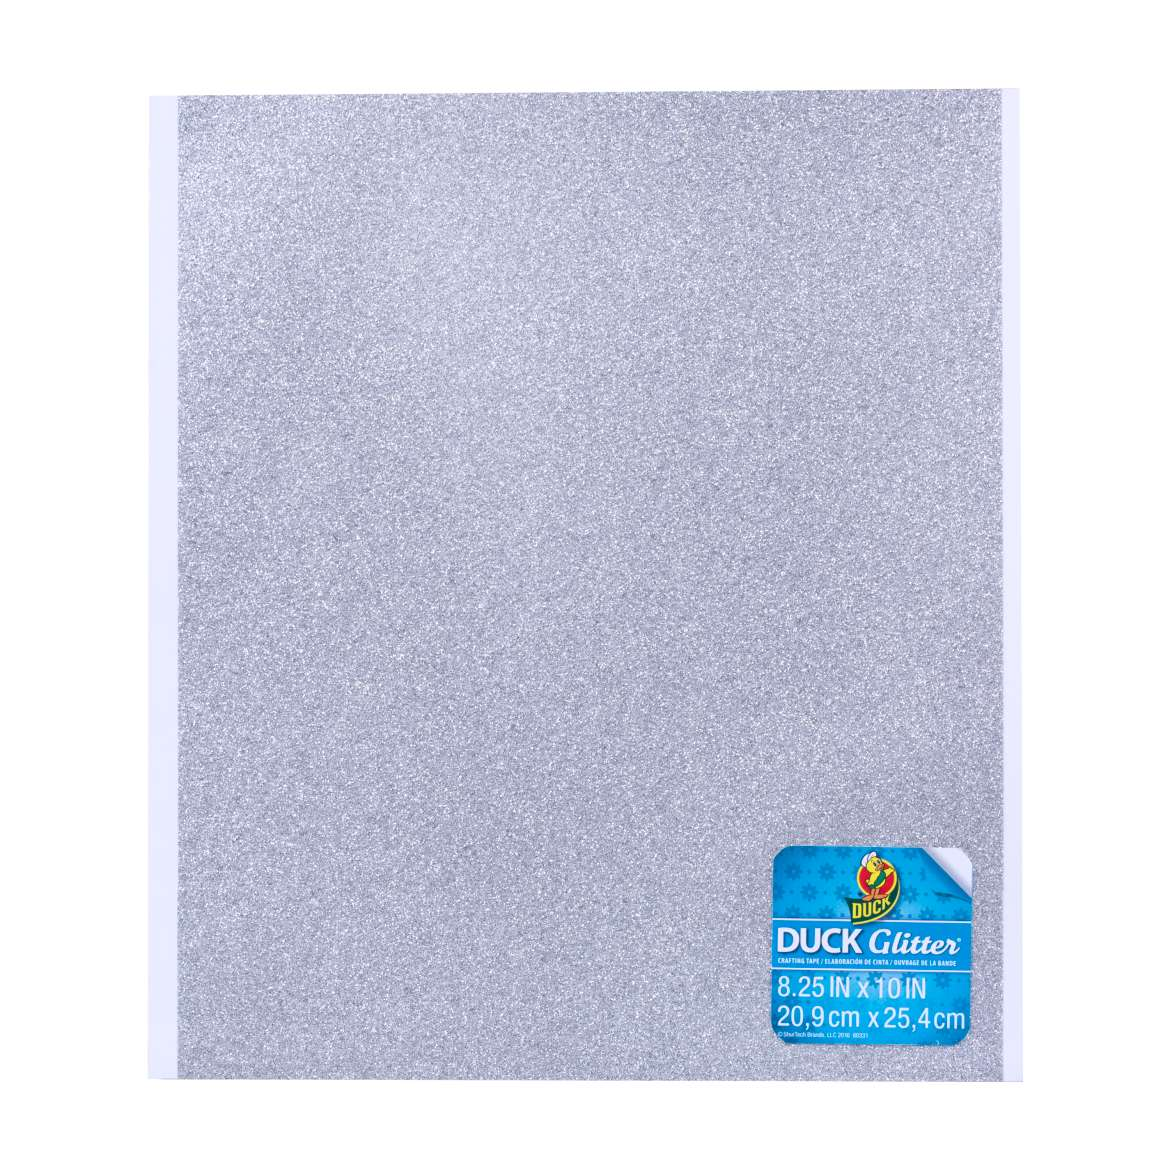 Duck Glitter® Sheets - Silver, 8.25 in x 10 in Image